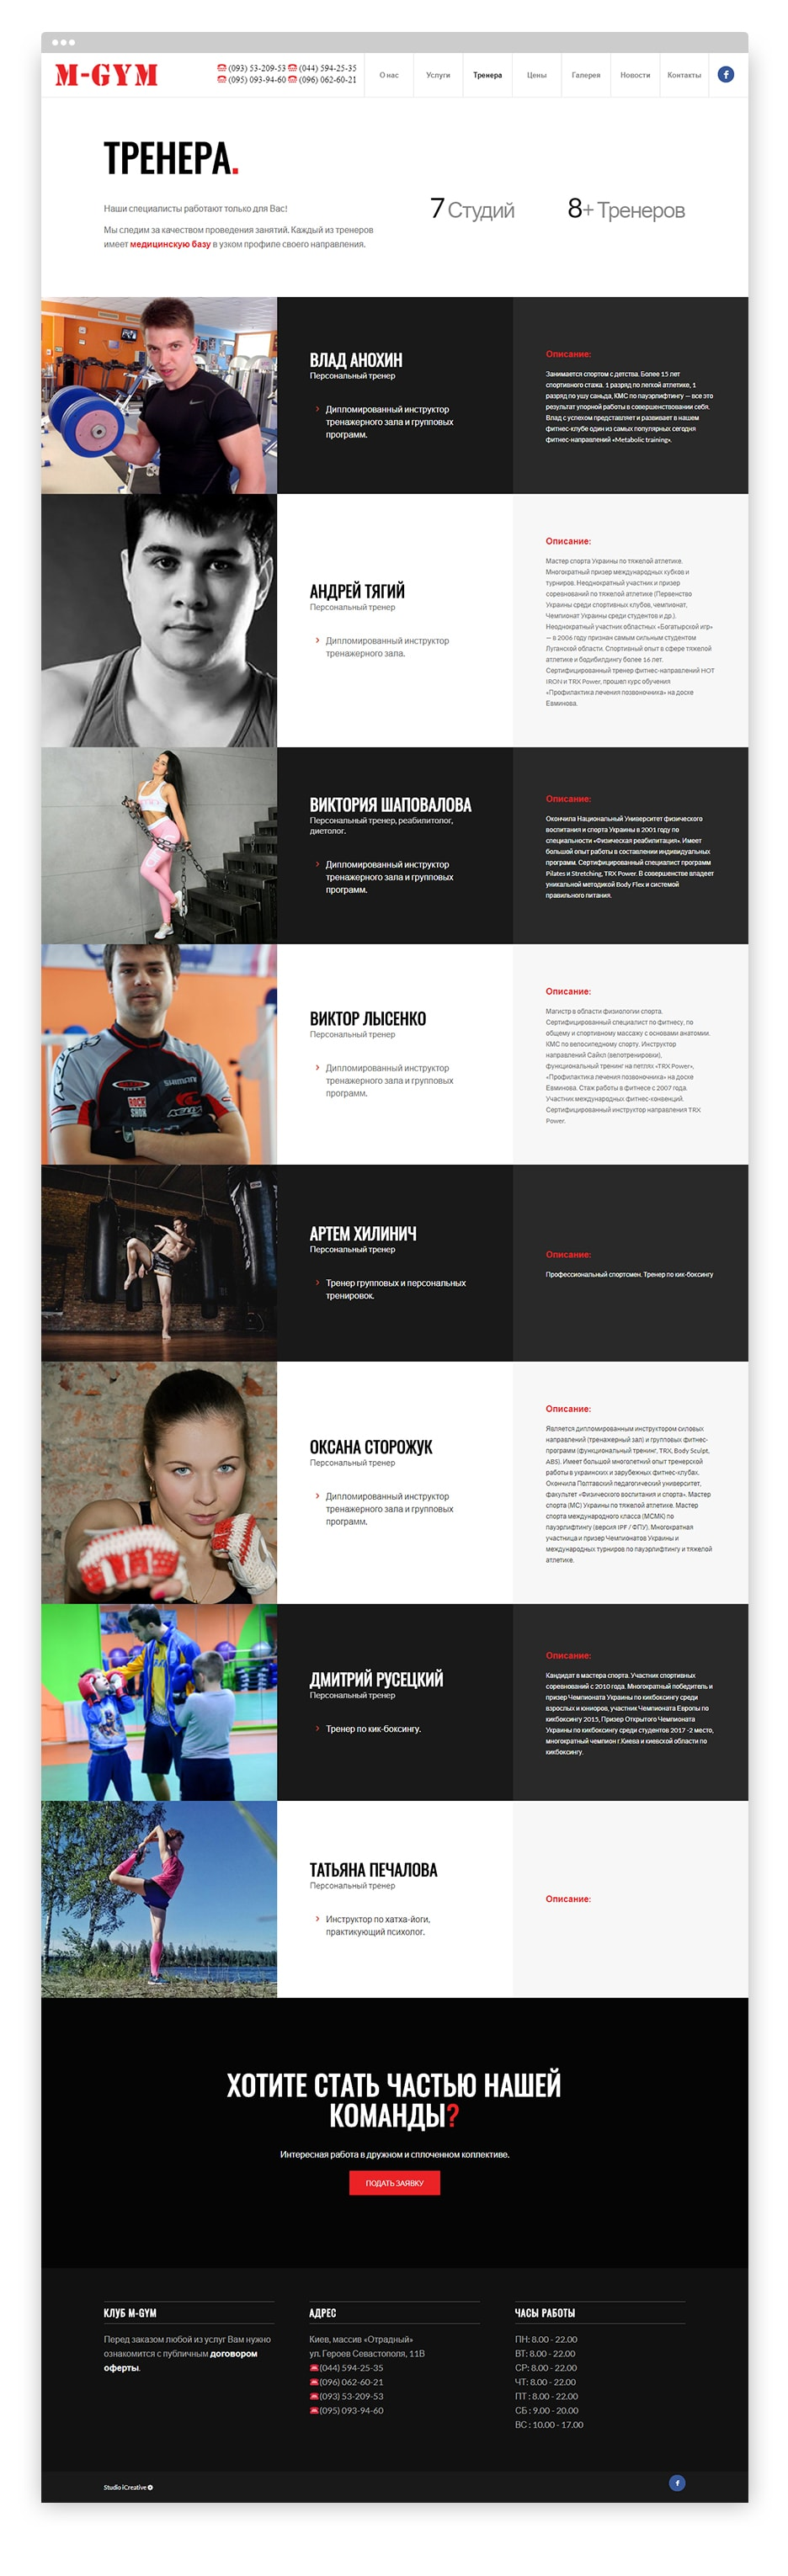 icreative.com.ua_m_gym_2